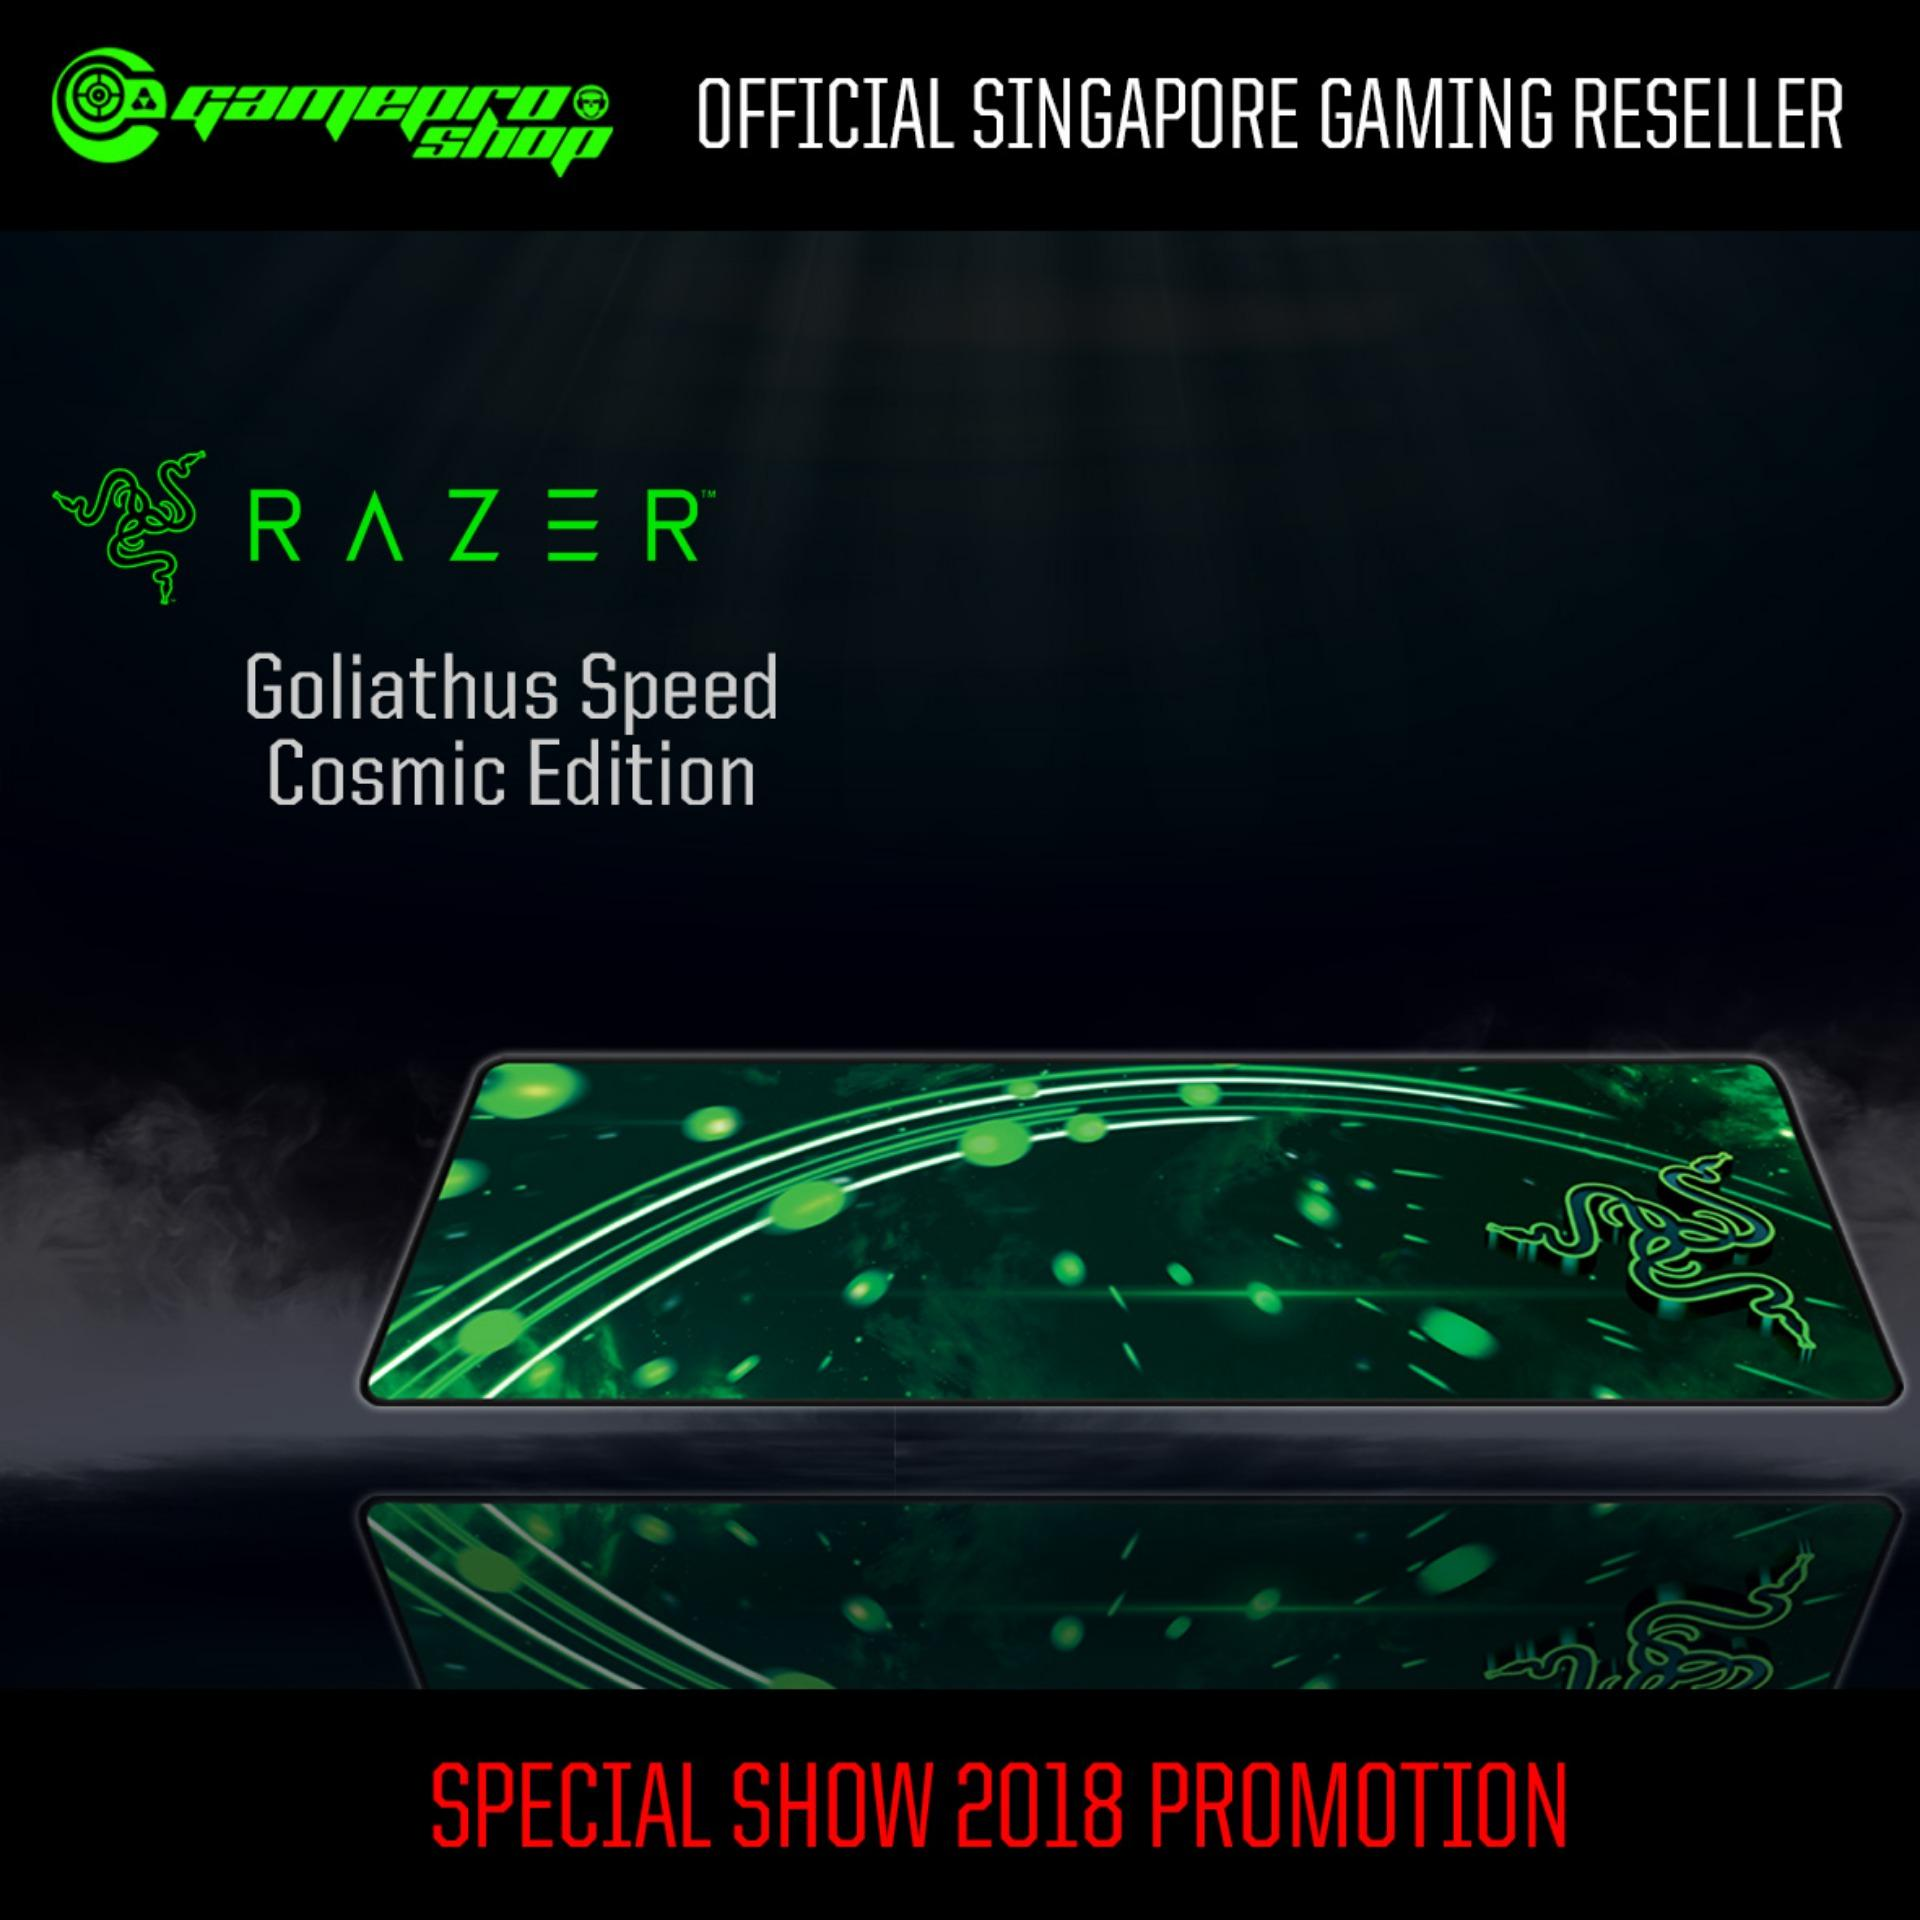 Coupon Razer Goliathus Speed Cosmic Edition Extended Gss Promo